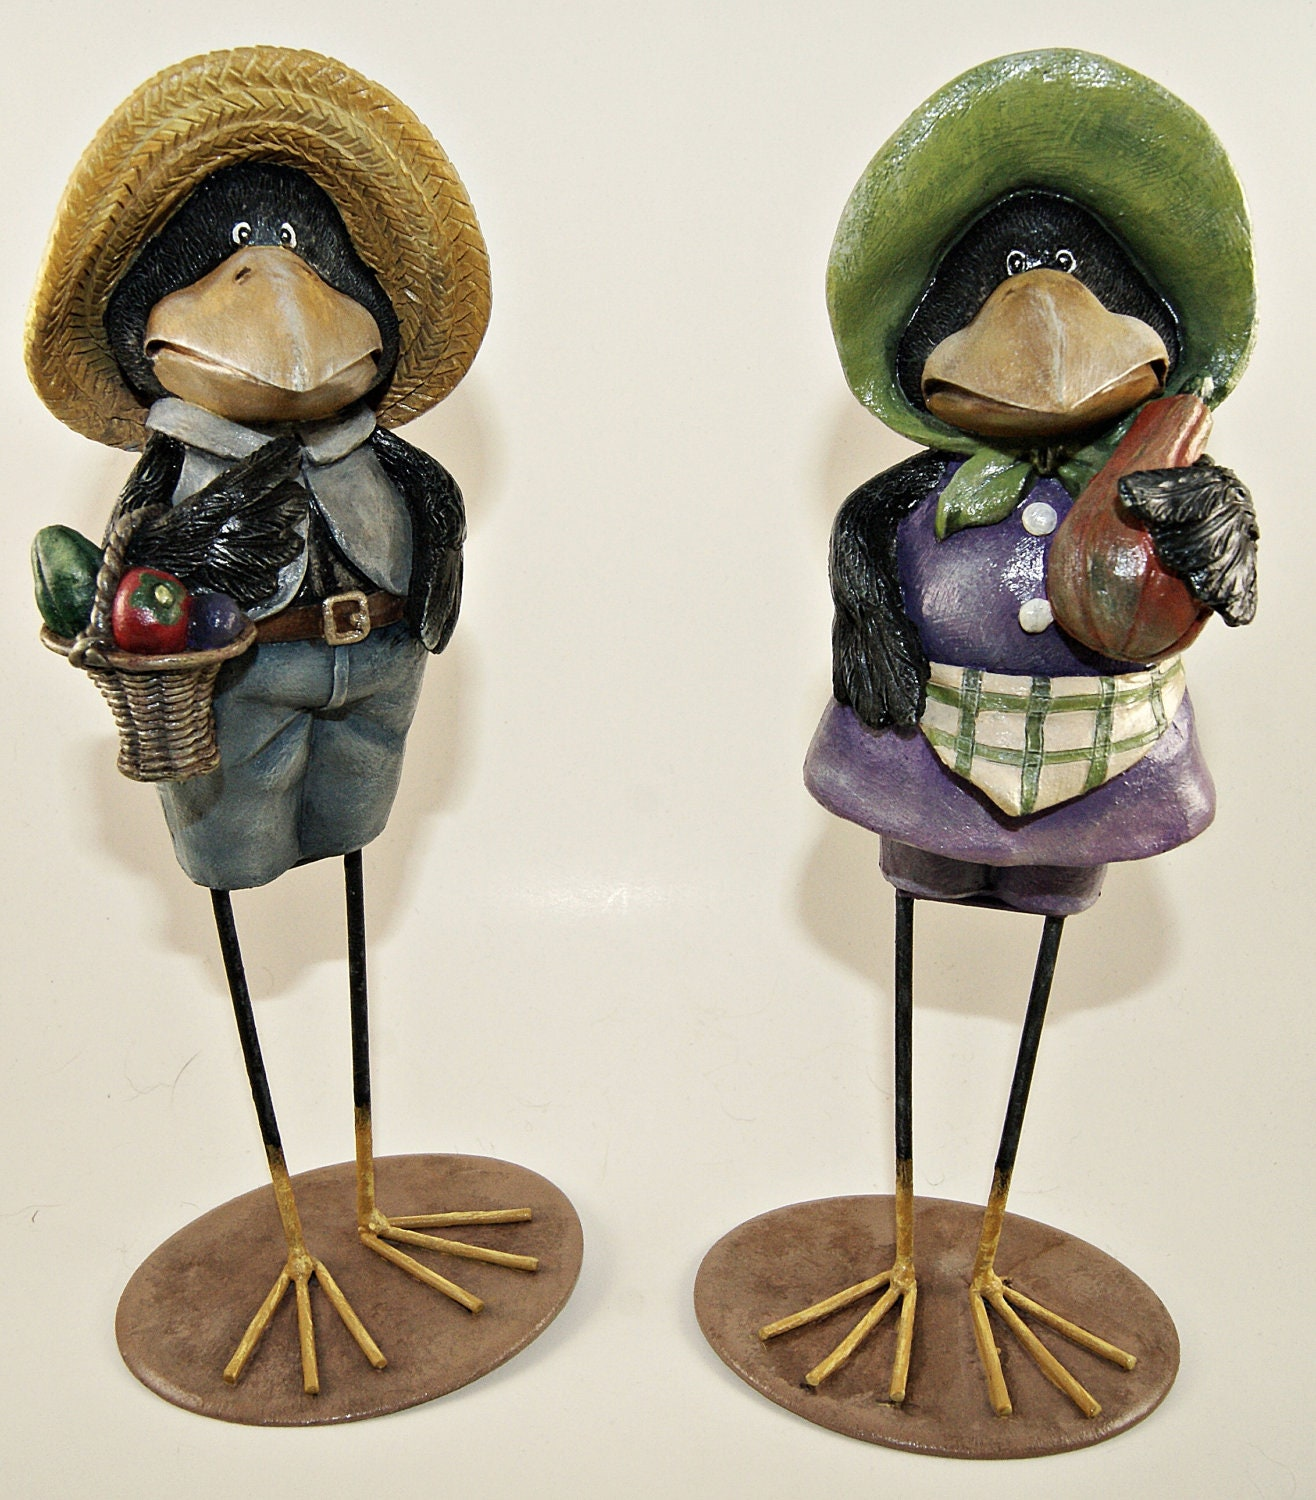 Home Decor Two Hand Painted Resin Crow Figurines Part Of